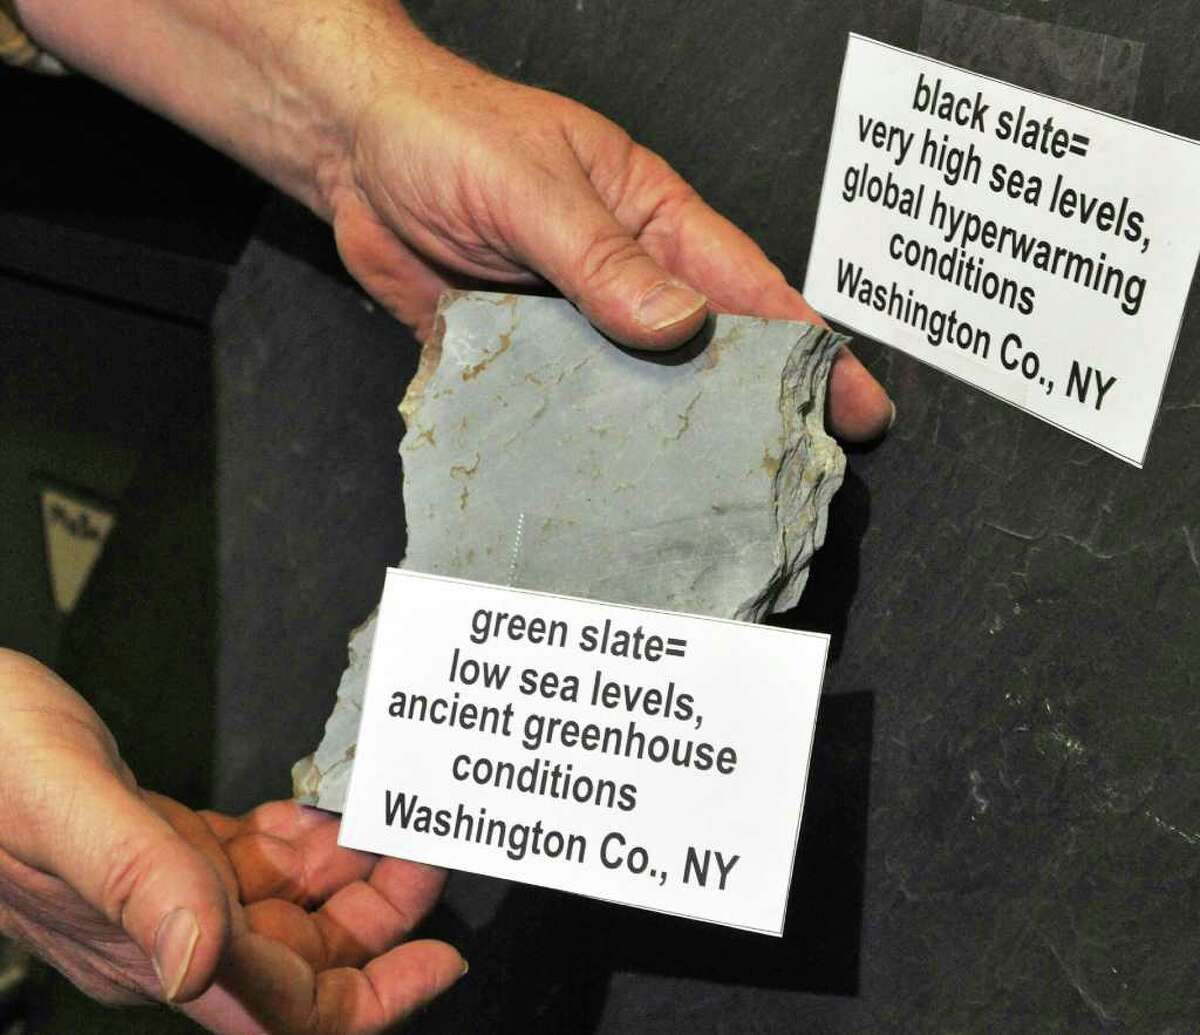 Dr. Ed Landing shows some of the shales found in Washington county for his research on how oceans drive ongoing climate change at his lab in the New York State Museum in Albany Wednesday March 7, 2012. (John Carl D'Annibale / Times Union)